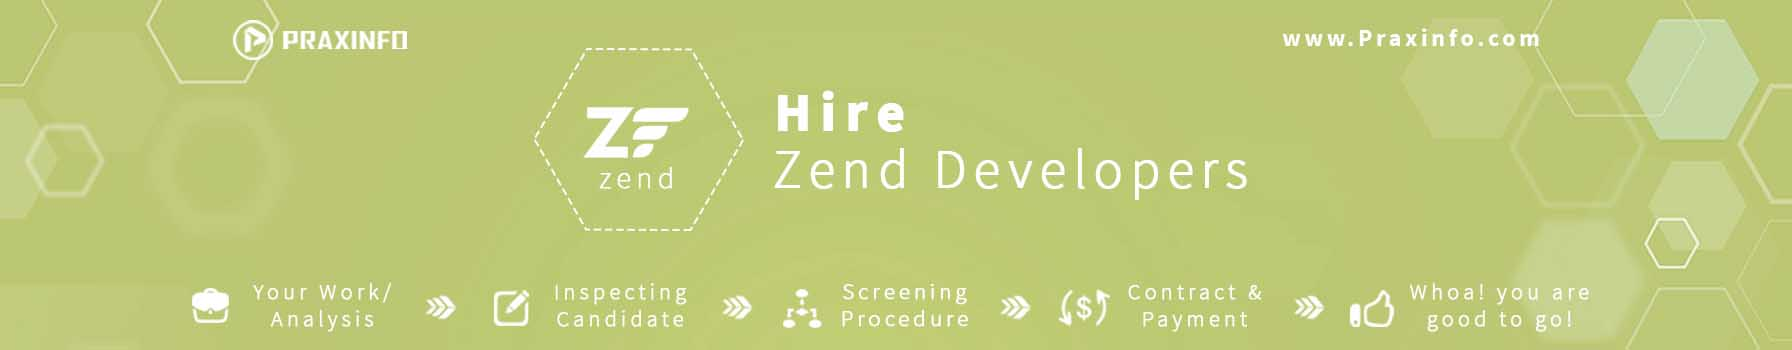 hire-Zend-developer.jpg